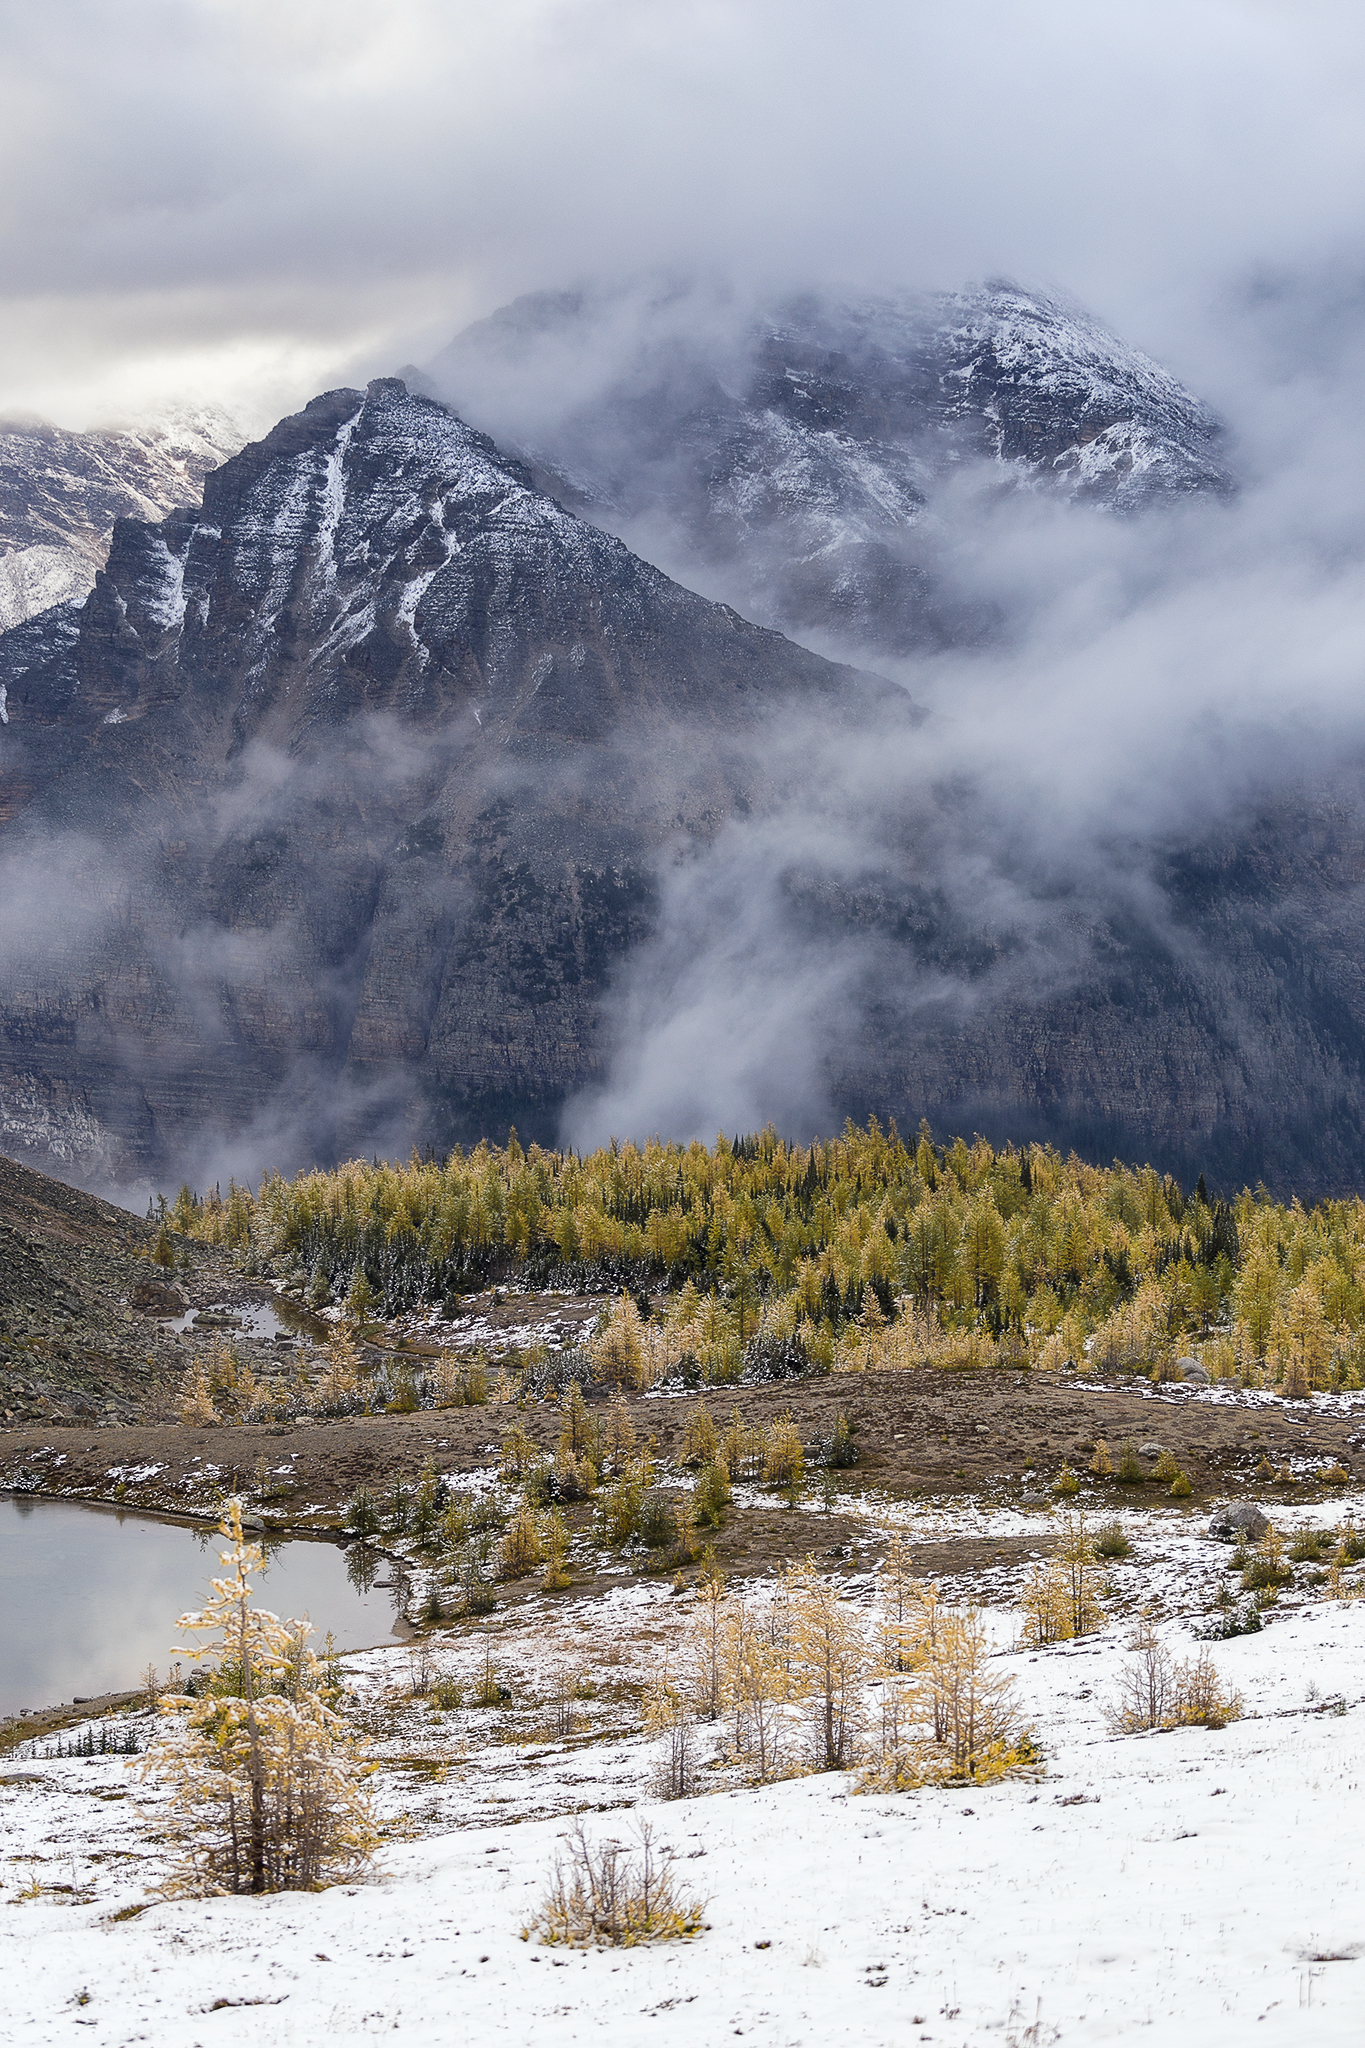 Golden Larches and fresh snow make this hike even more impressive.